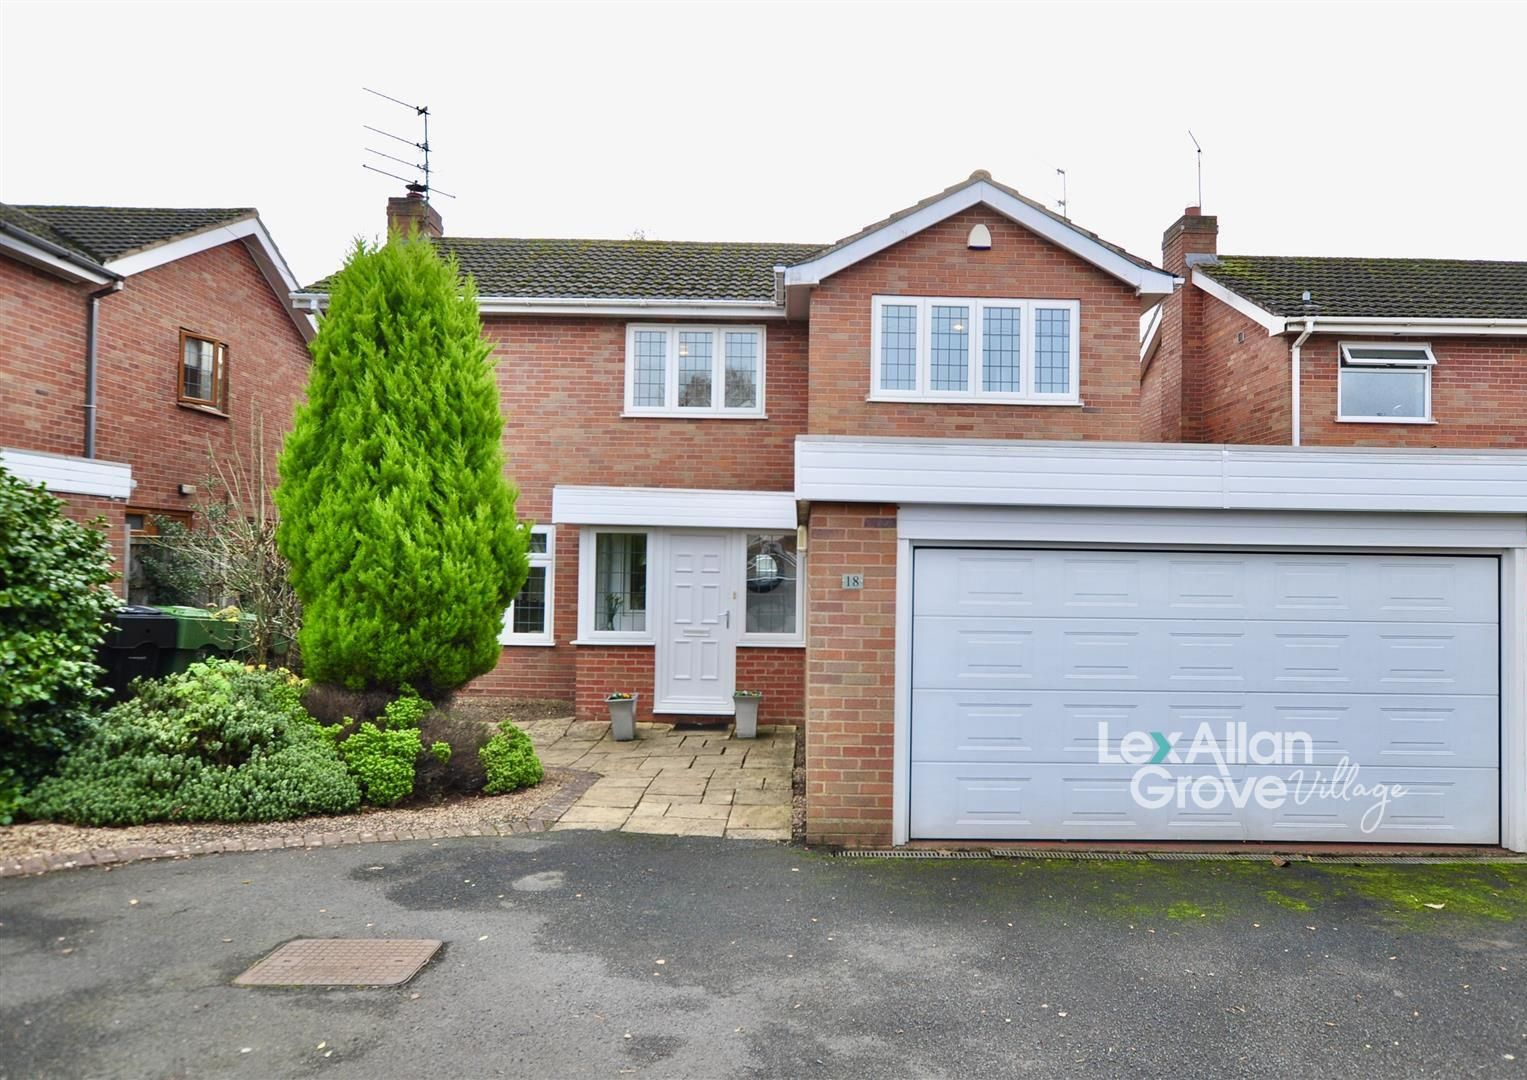 4 bed house for sale in Hagley 1